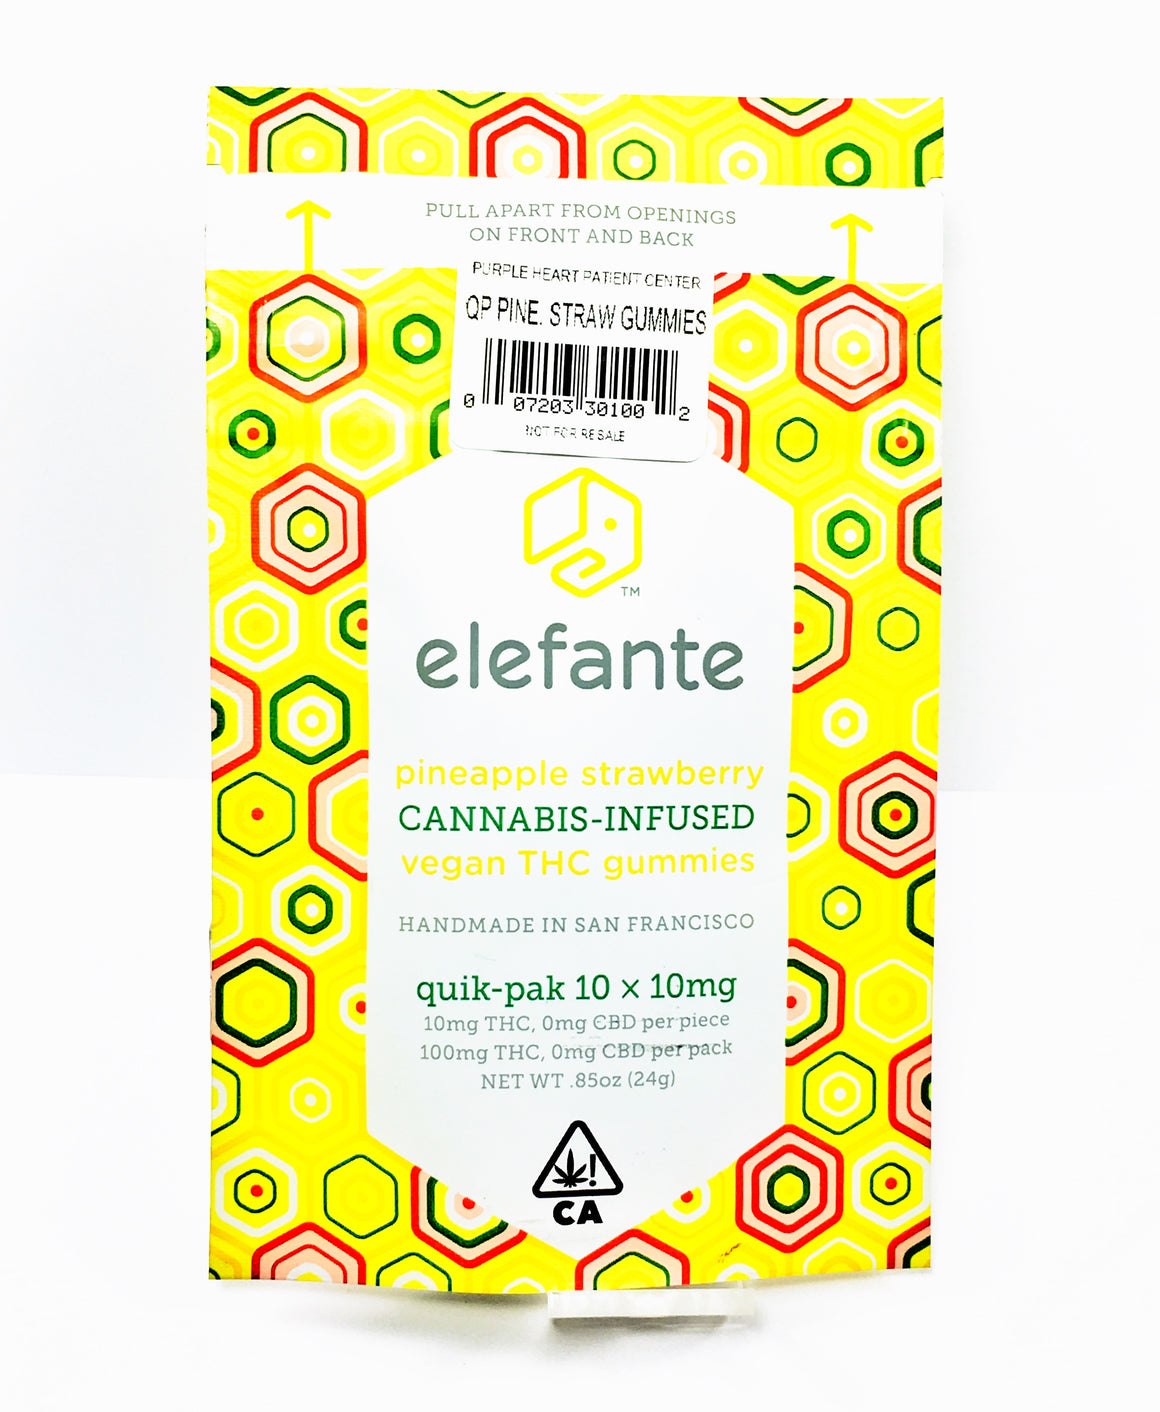 Elefante - Quik Pak Pineapple Strawberry Gummies